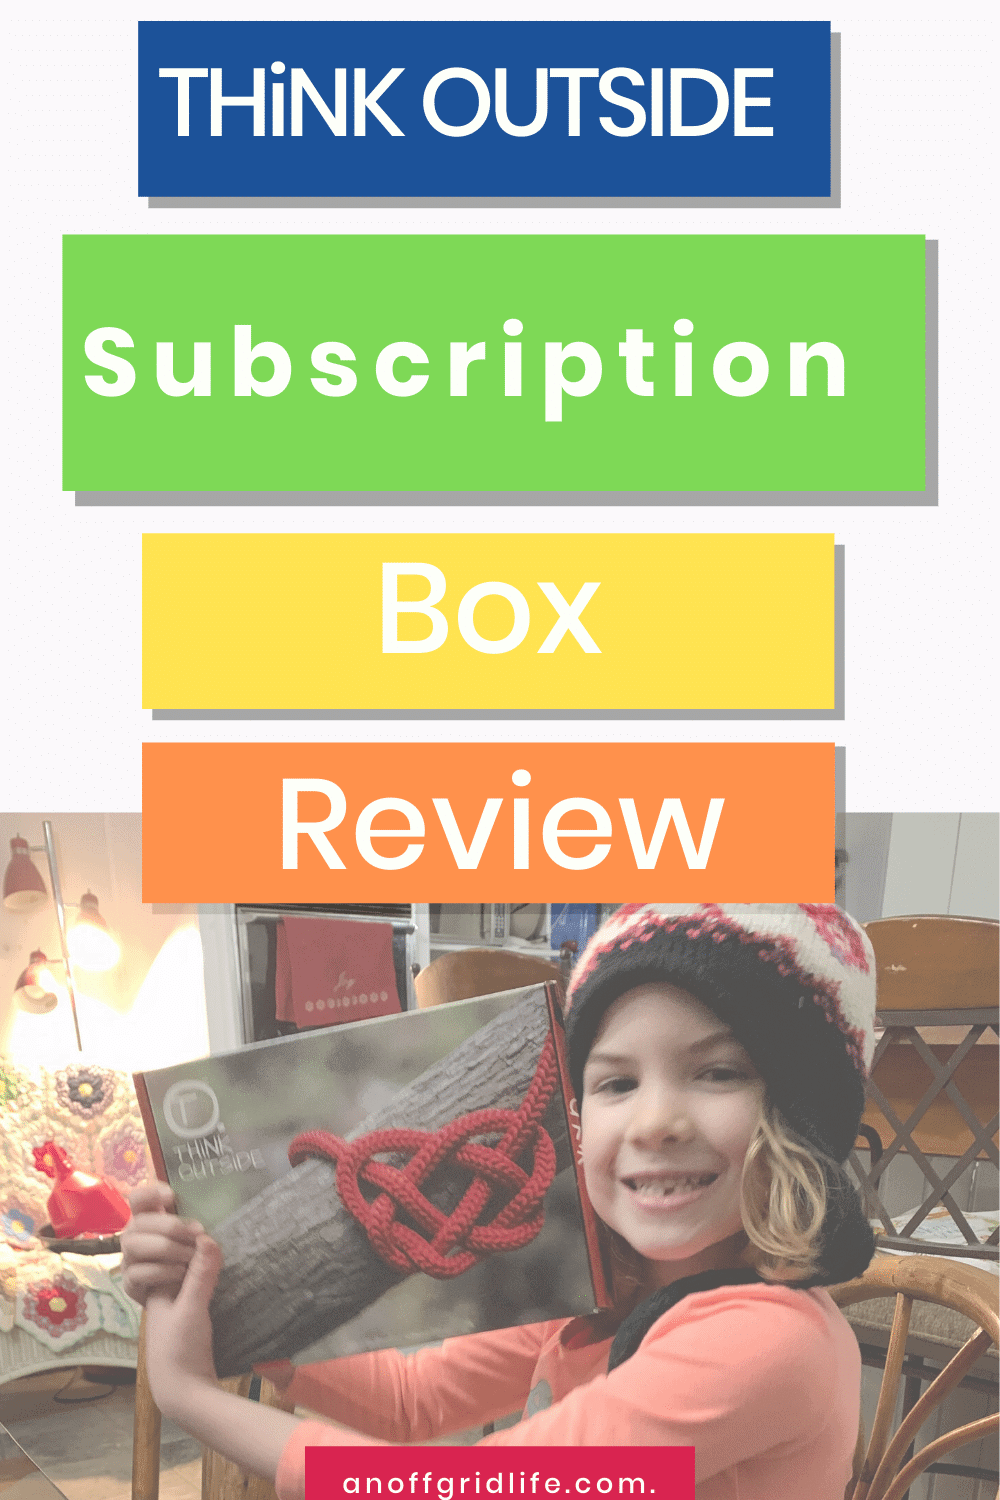 Think Outside Boxes Repair Box Review with Text Overlay